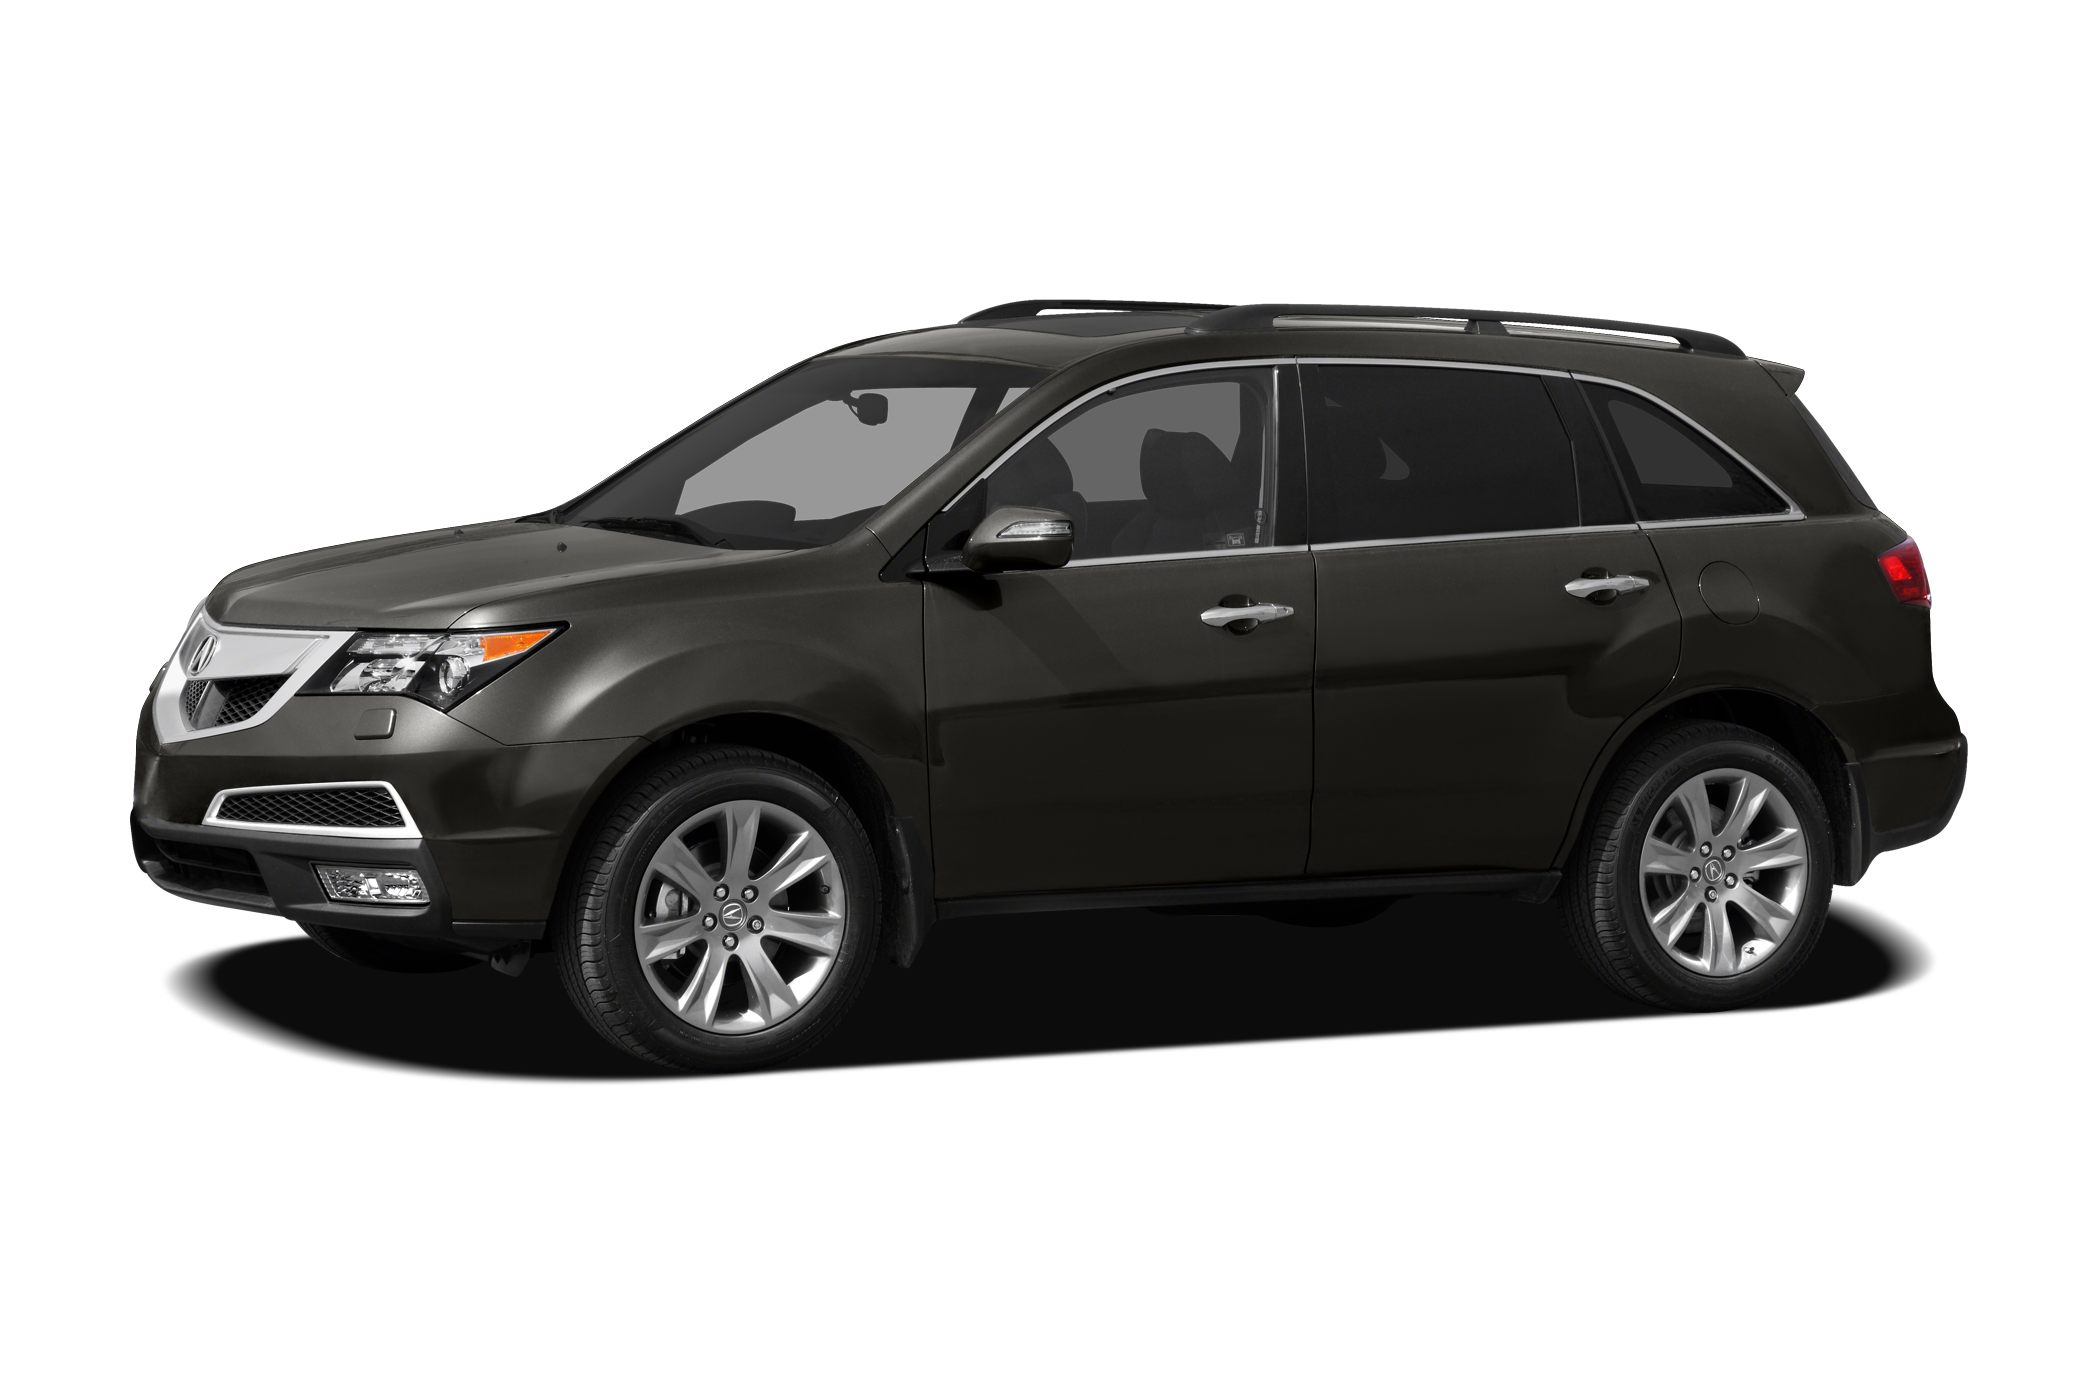 2012 Acura MDX 37 Technology MDX Technology Technology Package AWD Leather and Power moonroof